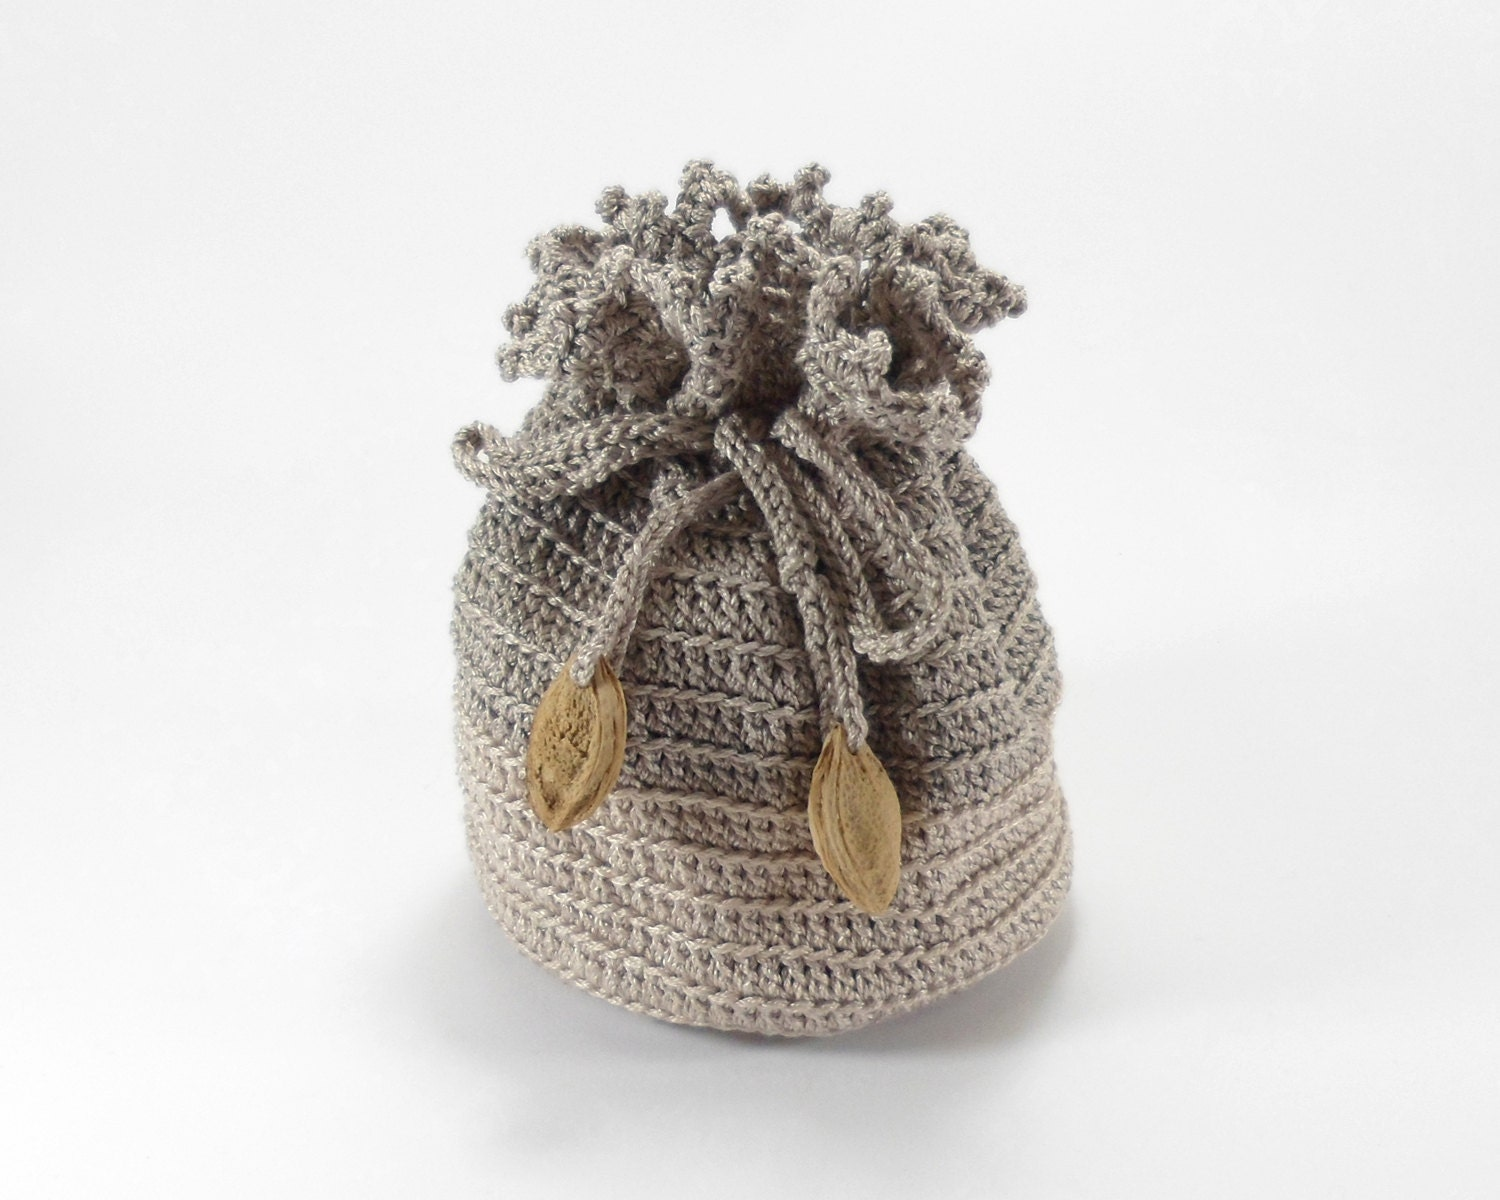 Crochet Drawstring Bag : ... Bag with Drawstring, Crochet Pouch, Gray Beige Christmas Gift Bag